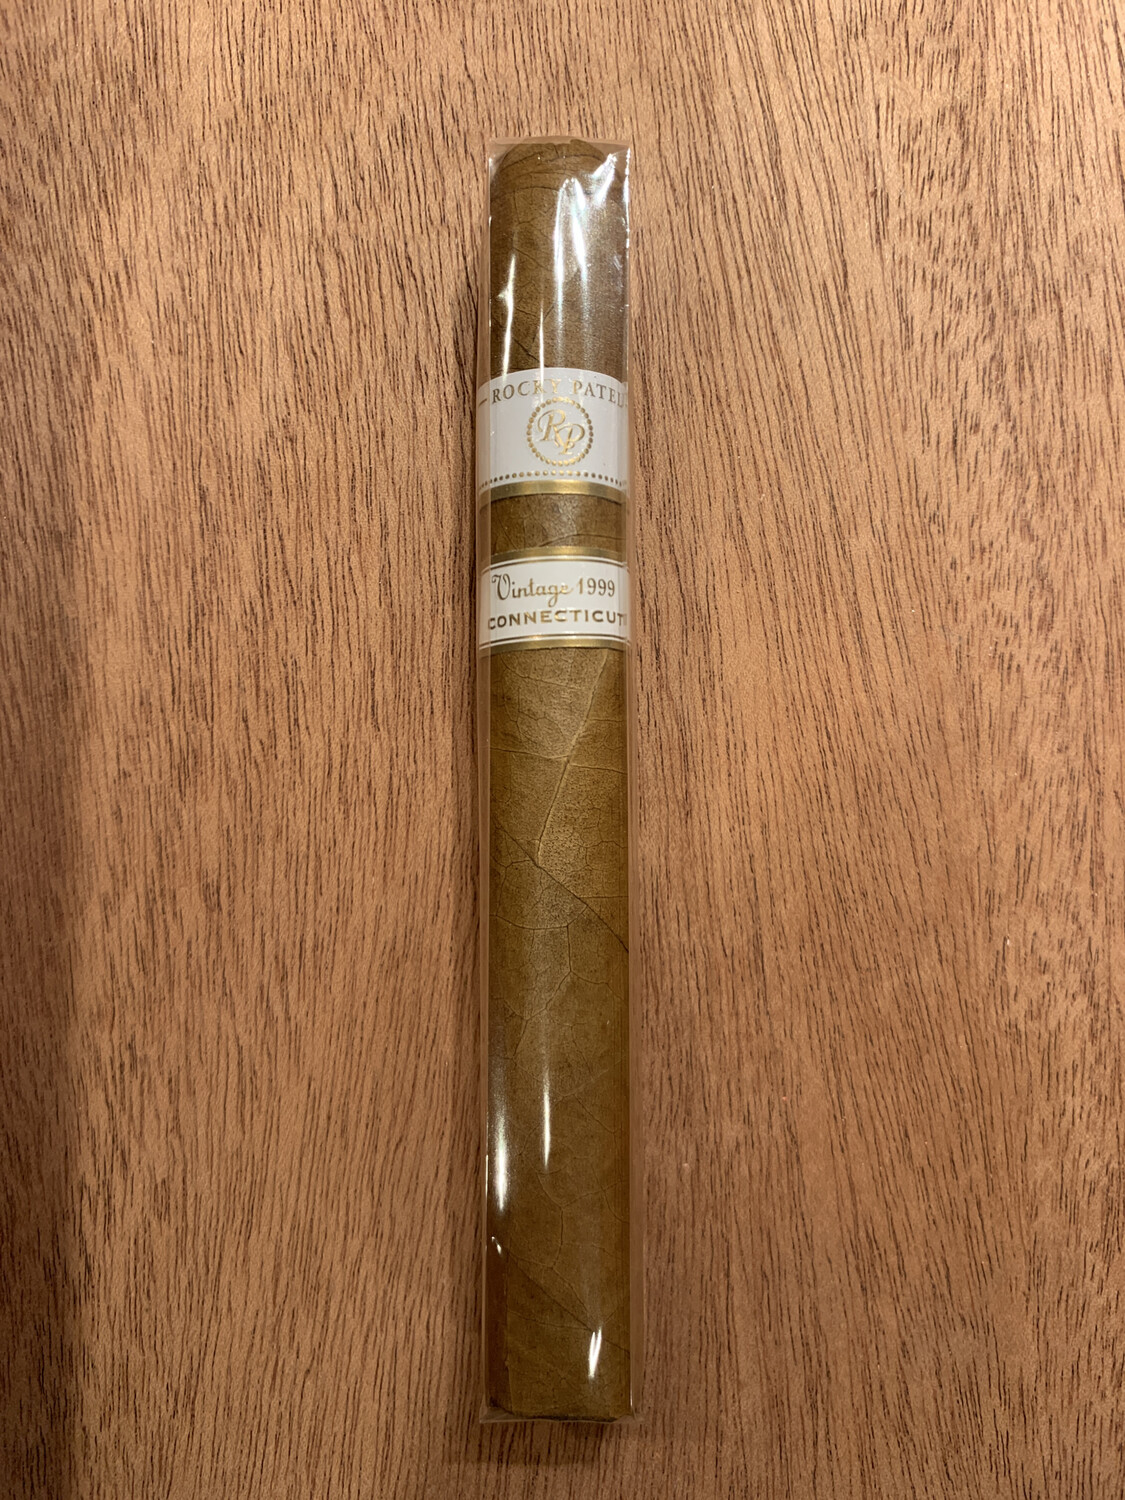 RP Vintage Connecticut 7 Years Toro